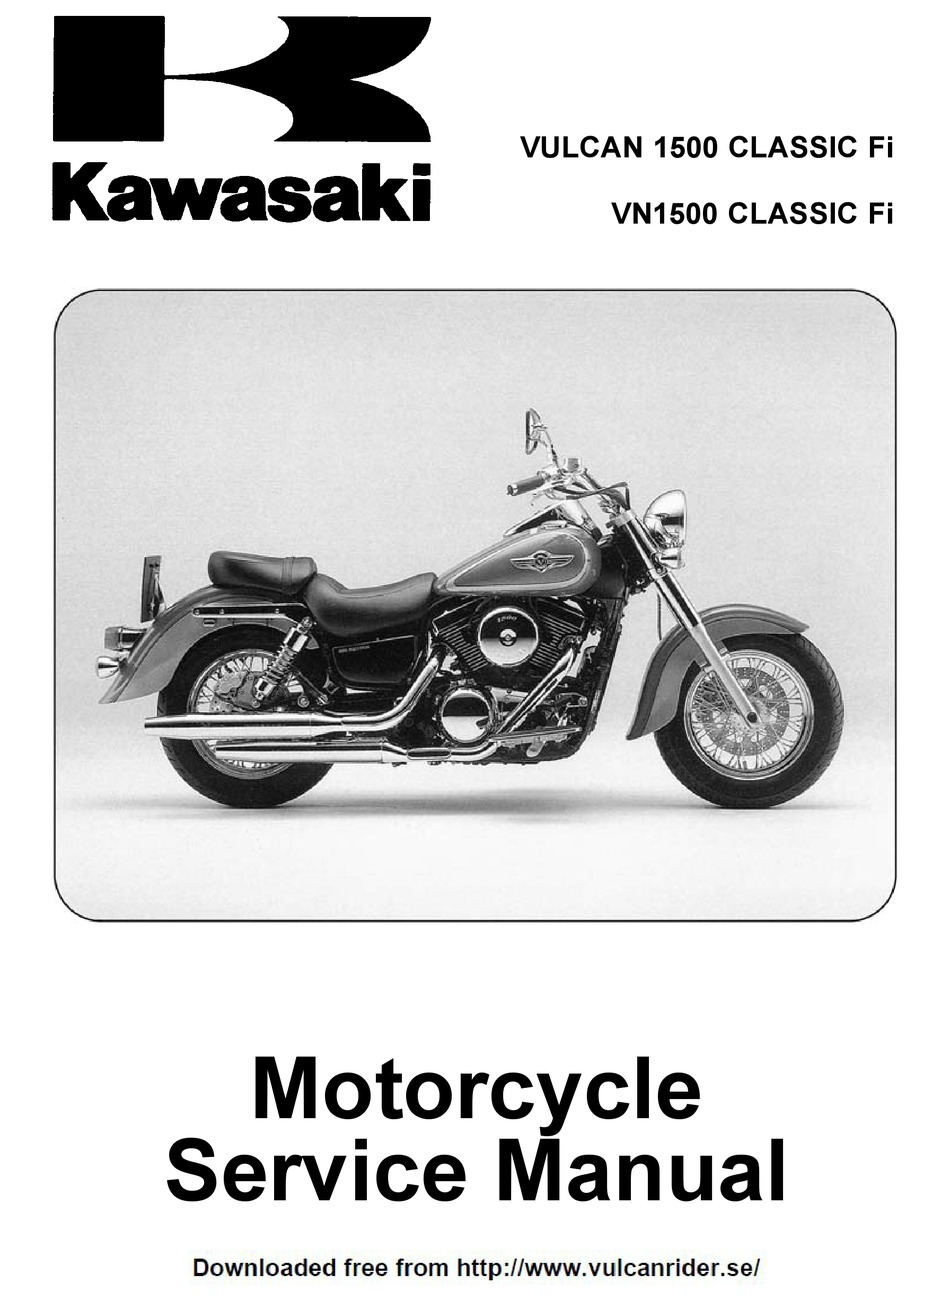 Kawasaki Vulcan 1500 Classic Fi Service Manual Pdf Download Manualslib